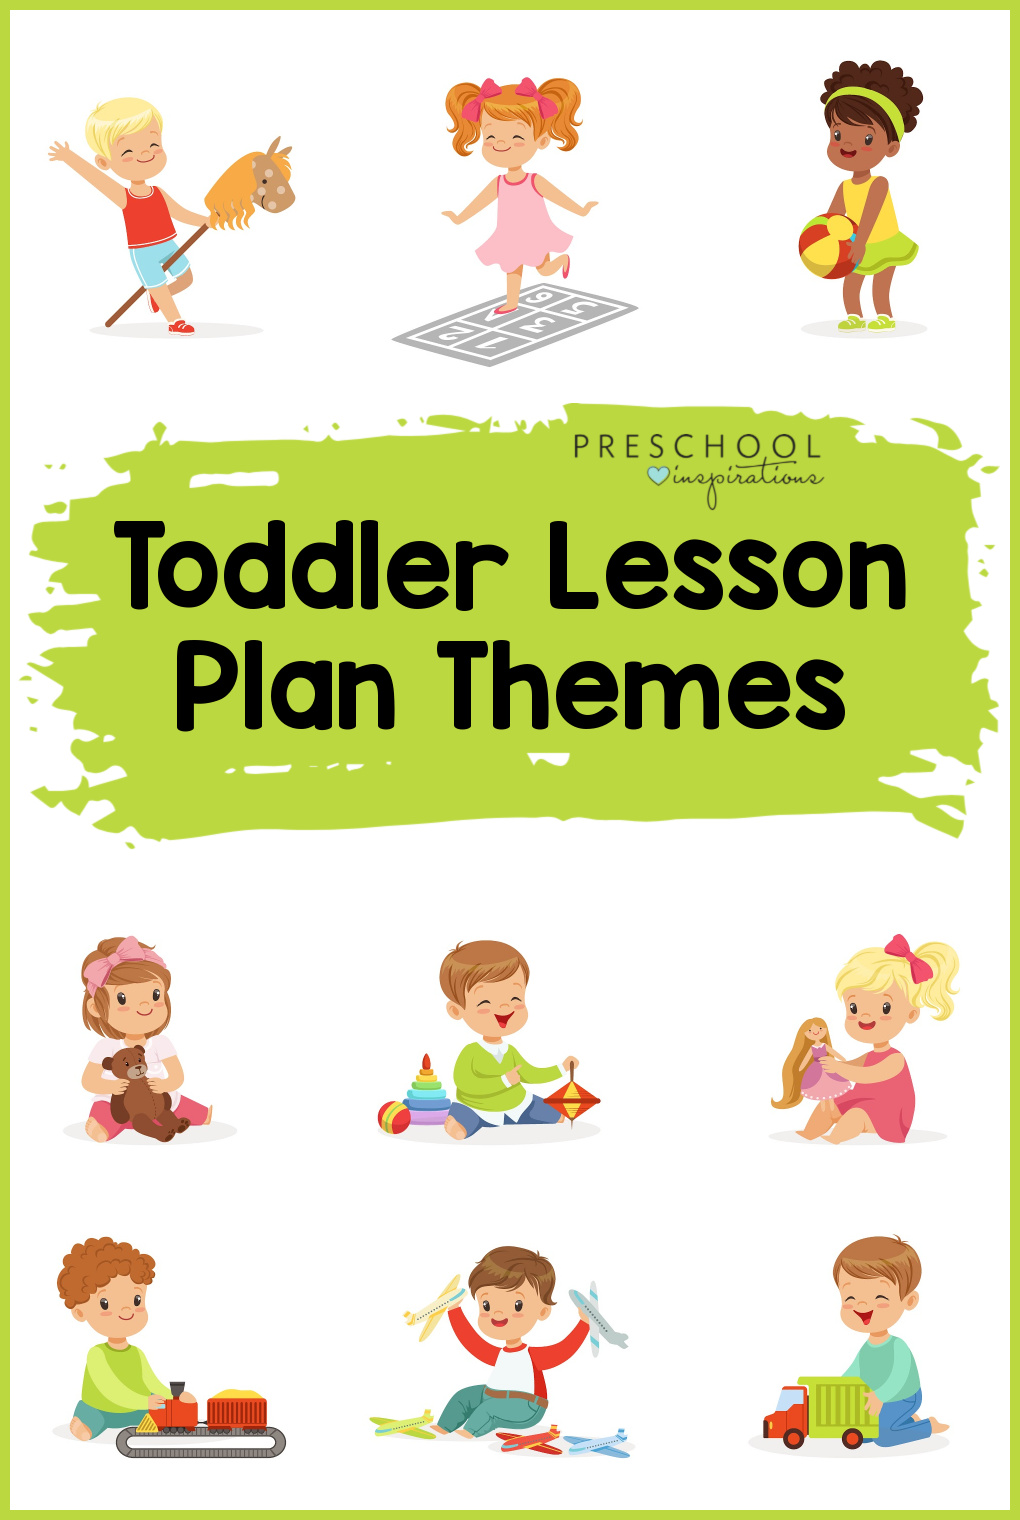 Teaching toddlers is simple and fun when you use themes! Find themed ideas, activities, and lesson plans to go along with some of the most popular toddler themes, such as All About Me, Balls, Weather, and more!